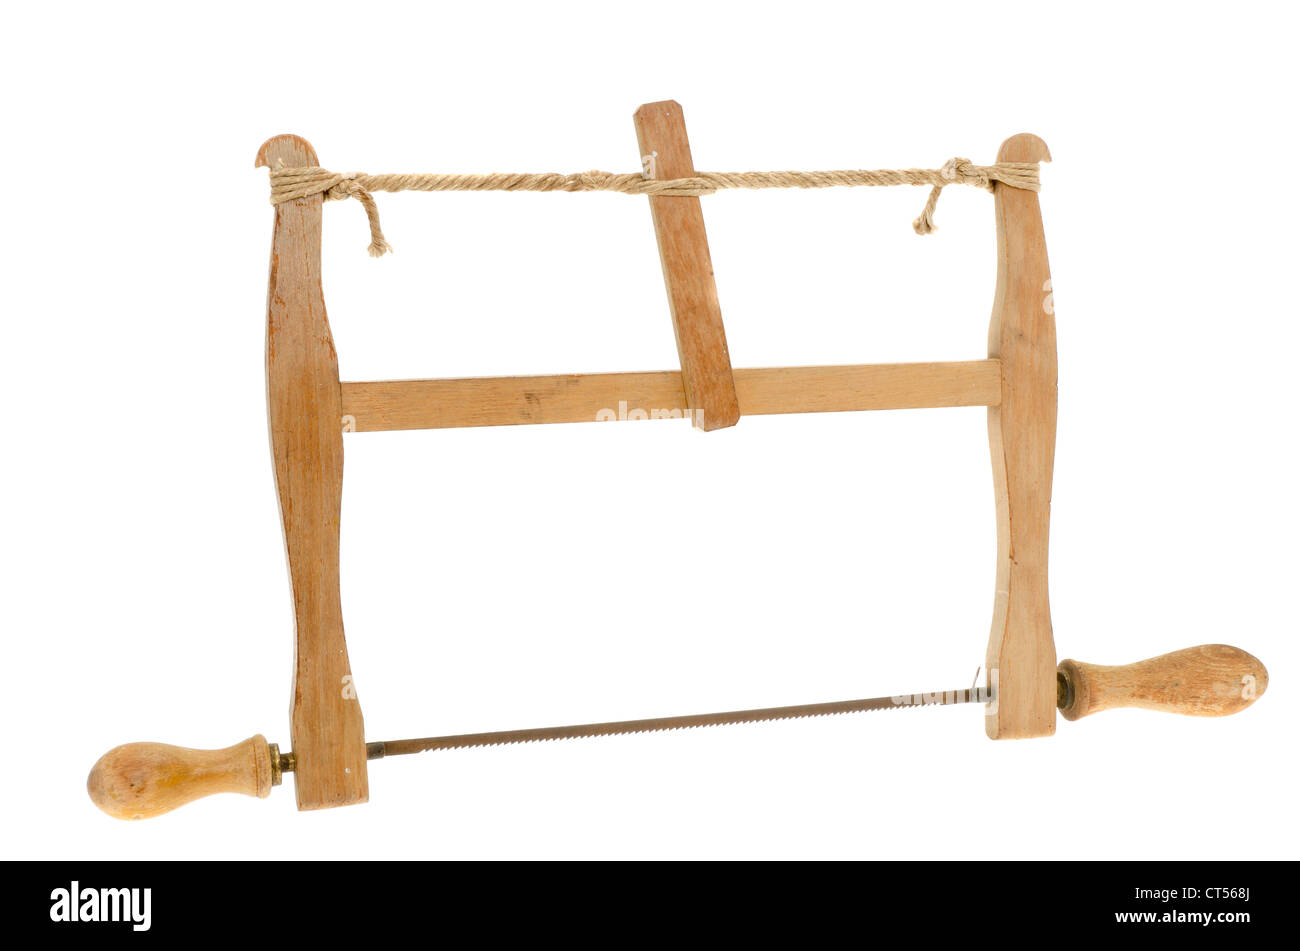 Antique carpenters bow saw - studio shot on a white background. - Stock Image